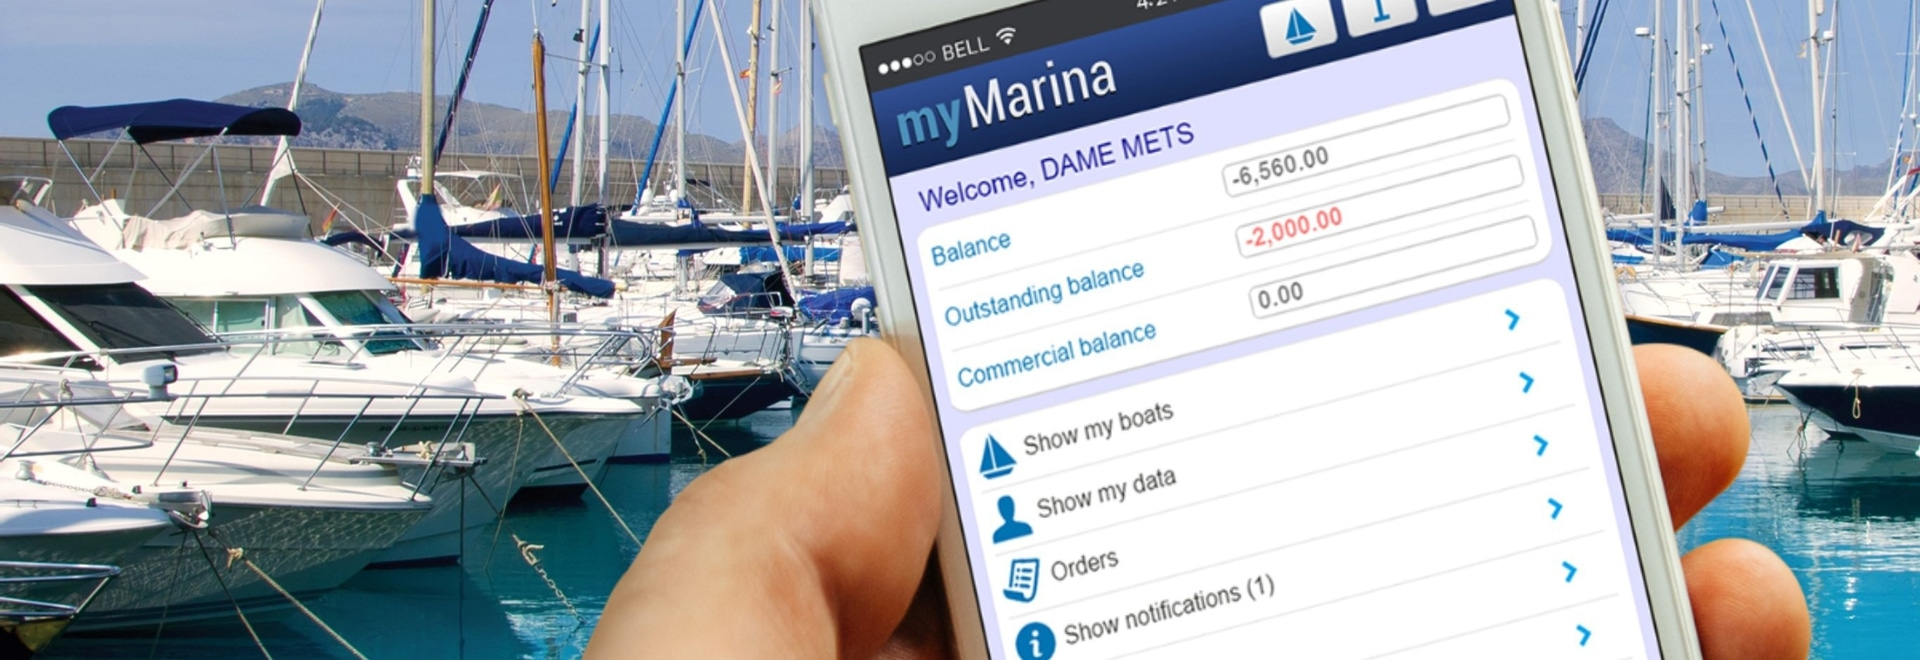 HOW TO MAKE MORE OUT OF YOUR MARINA THIS SEASON?